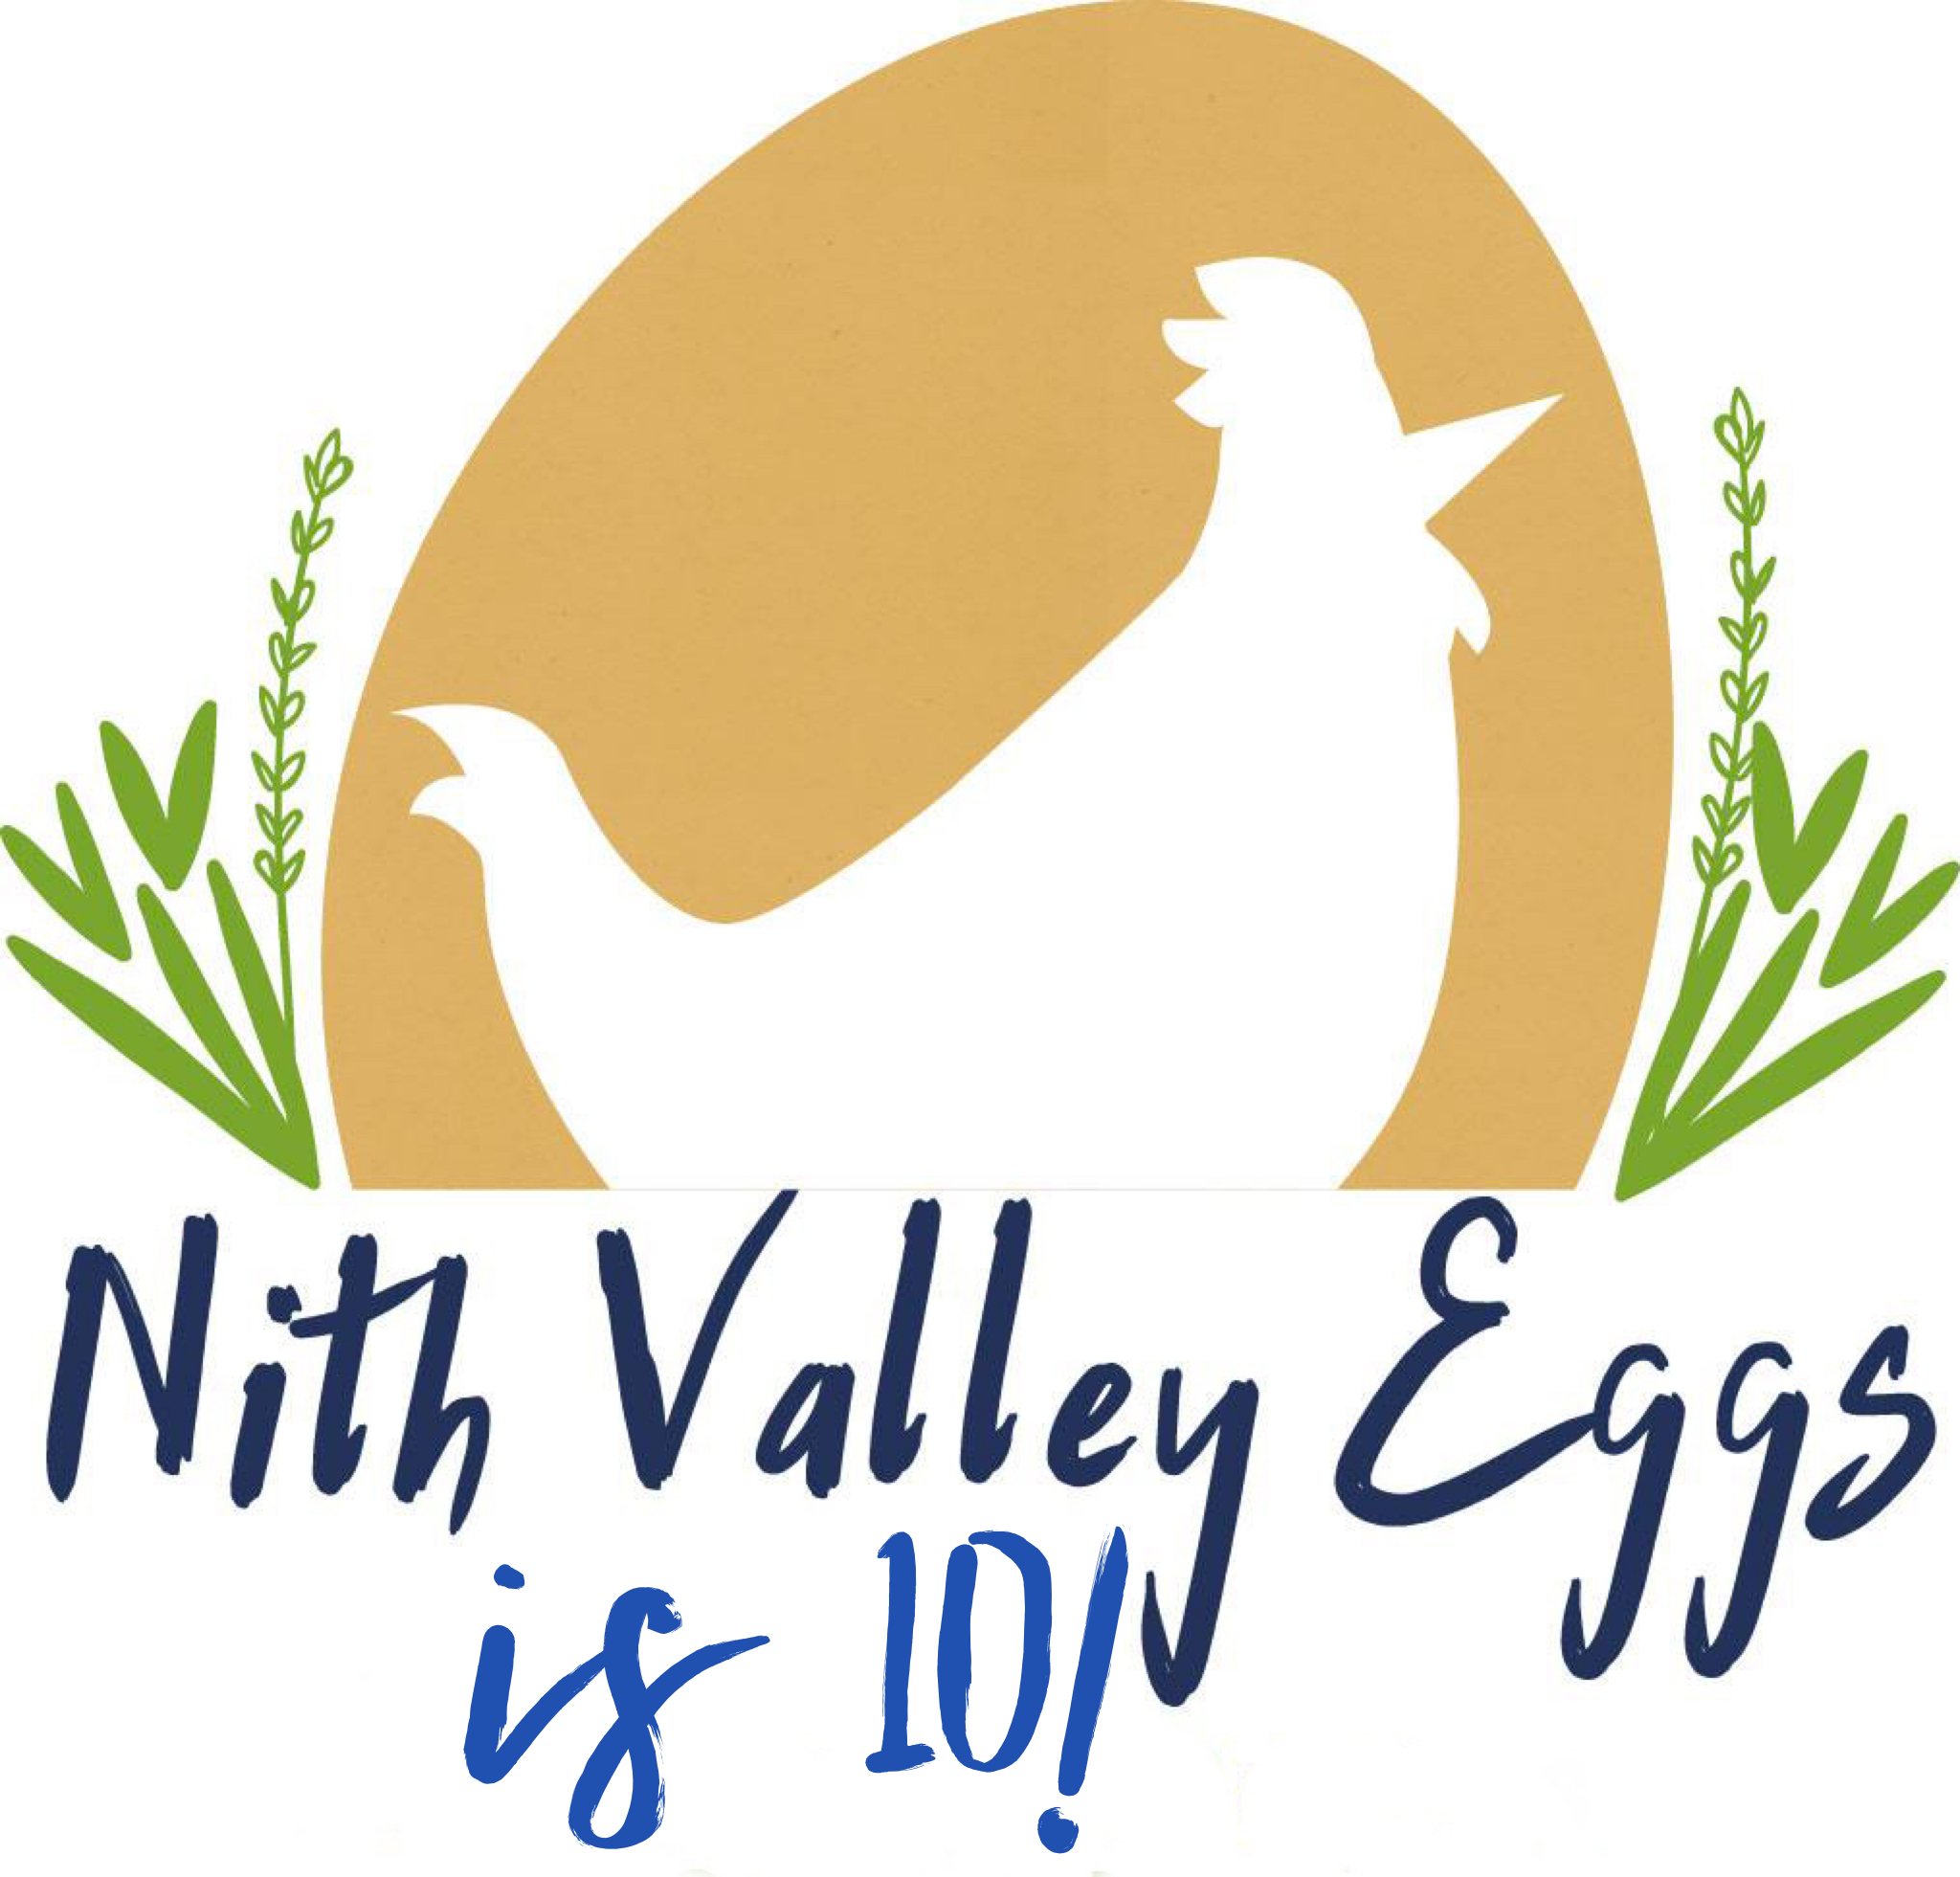 Nith Valley Eggs is 10!